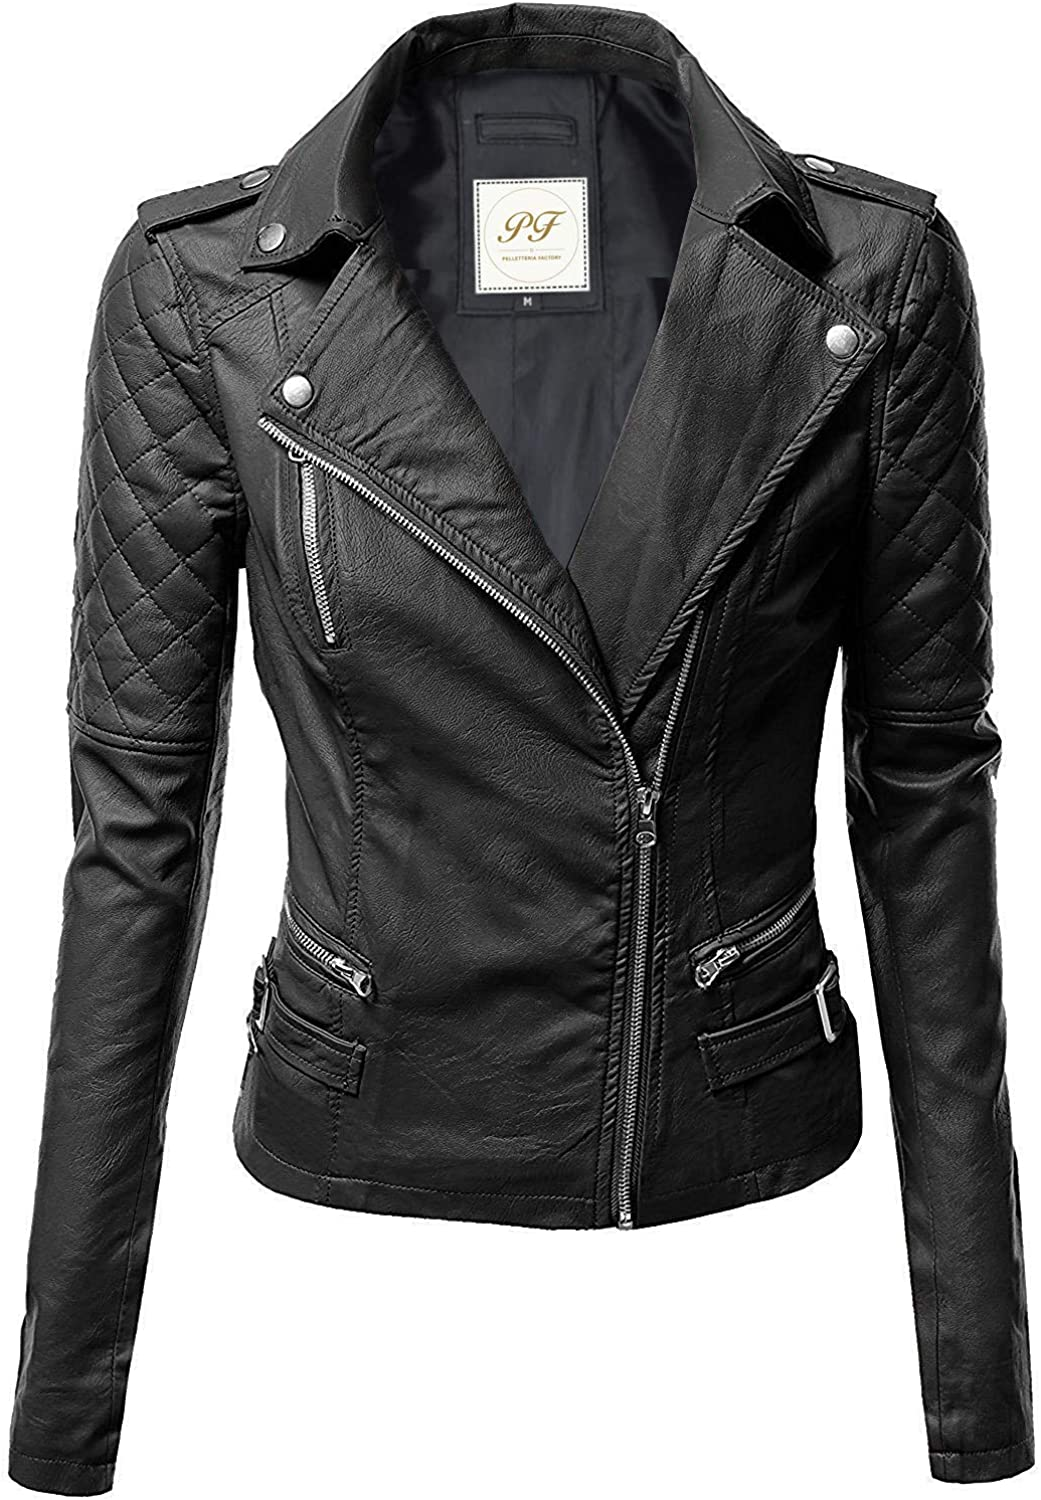 Pelletteria Factory Notch Collar Quilted Biker Faux Leather Jacket for Women